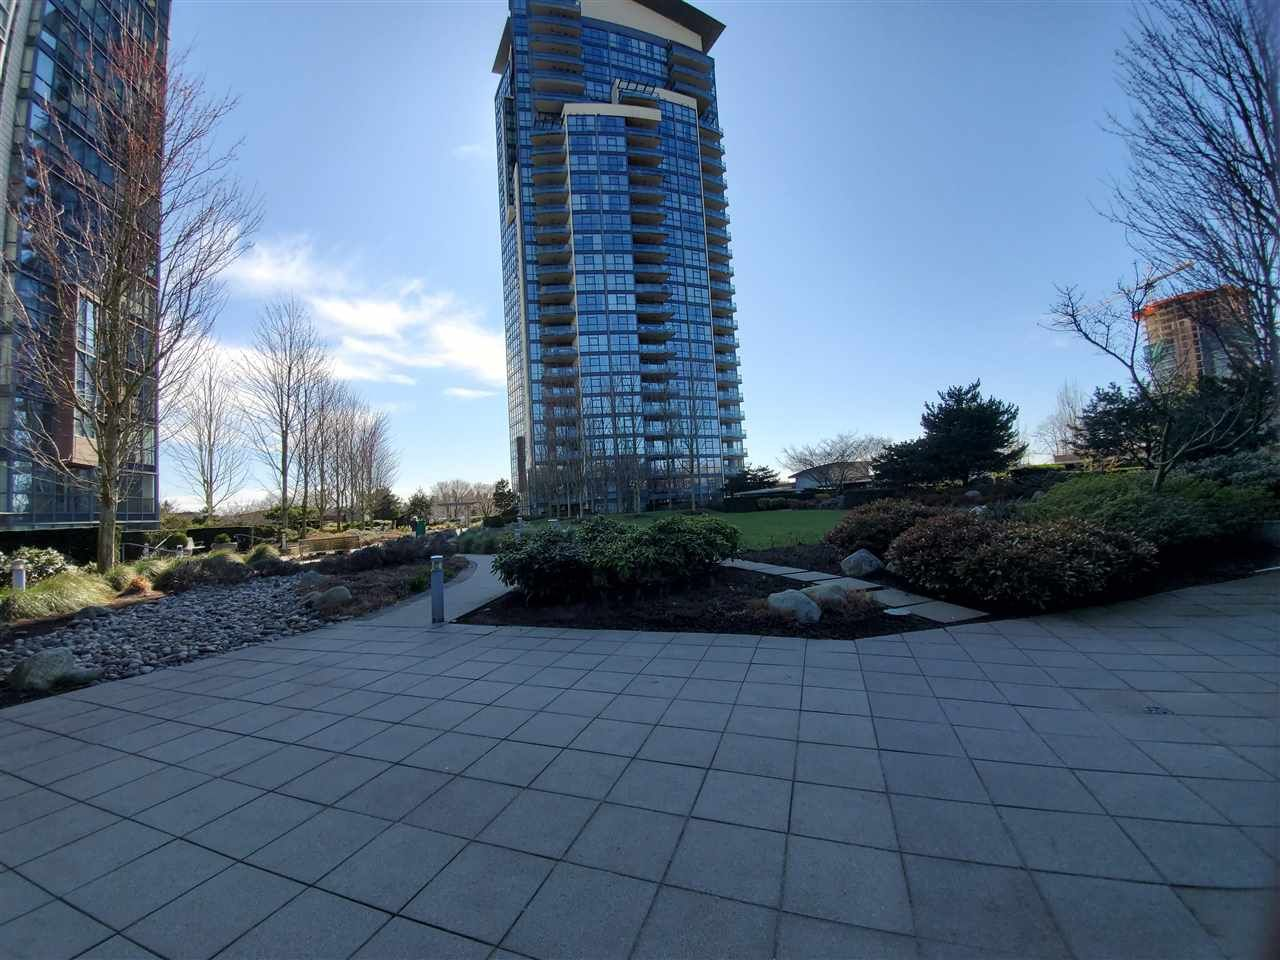 Photo 18: Photos: 1704 5611 GORING STREET in Burnaby: Central BN Condo for sale (Burnaby North)  : MLS®# R2476074